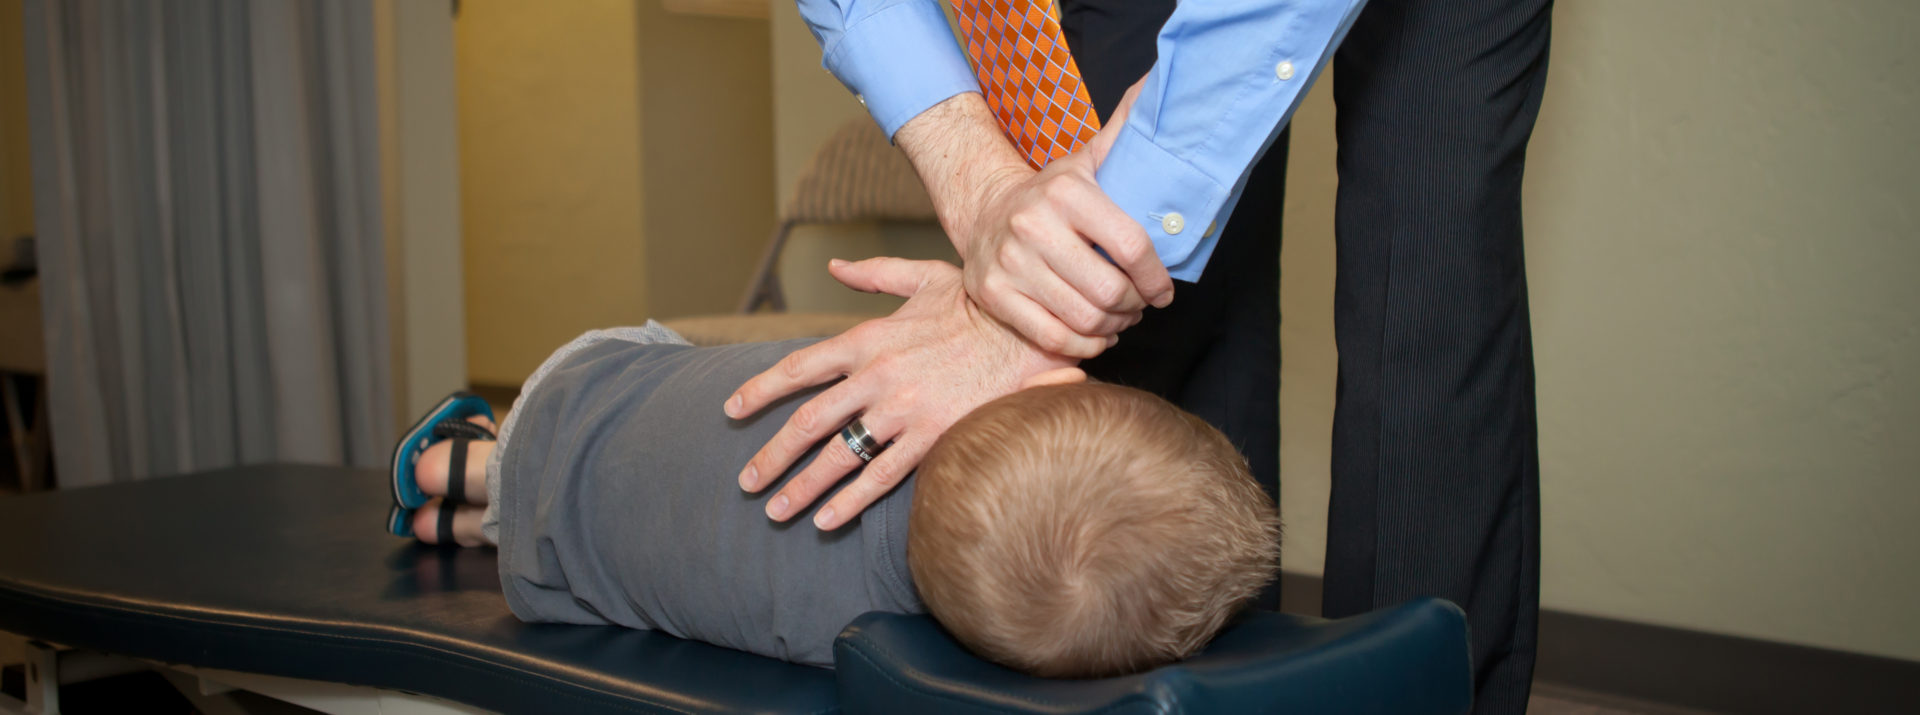 We are a unique chiropractic office